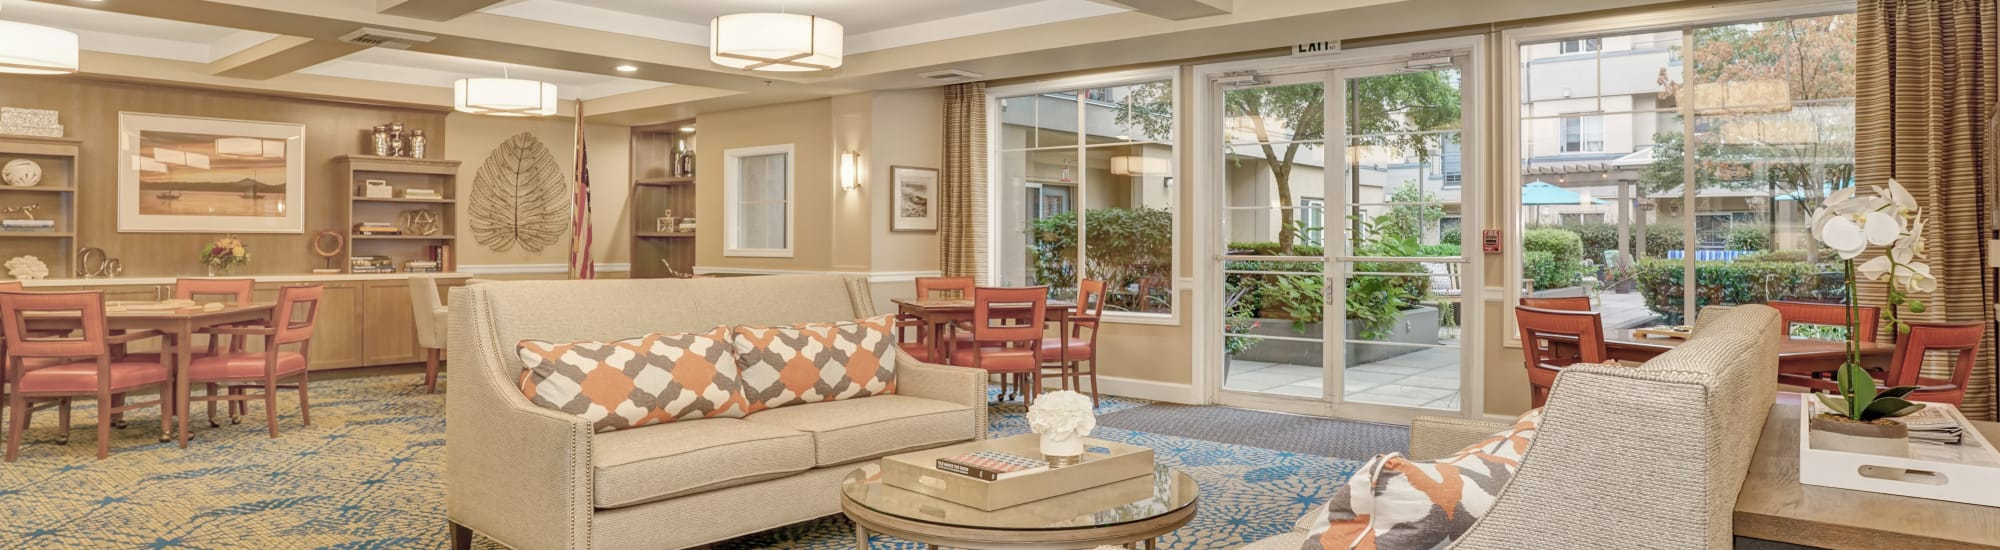 Schedule a Tour at Island House Assisted Living in Mercer Island, Washington